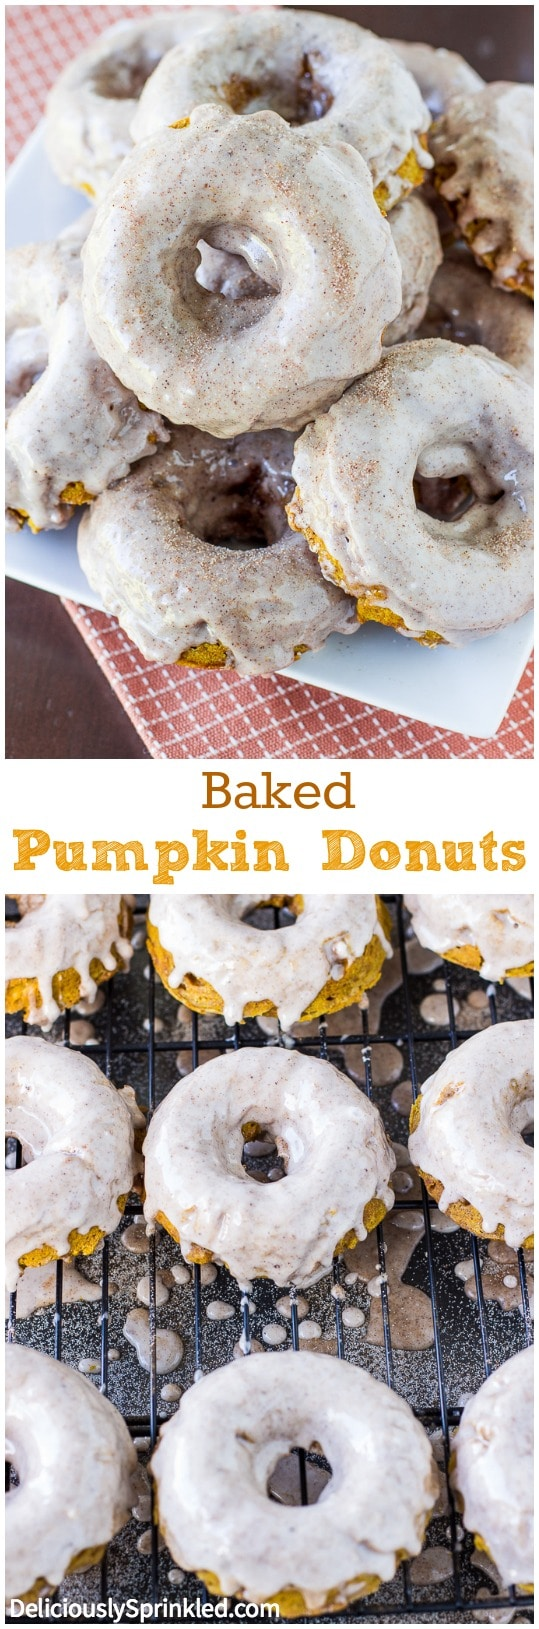 Baked Pumpkin Donuts with Cinnamon Glaze